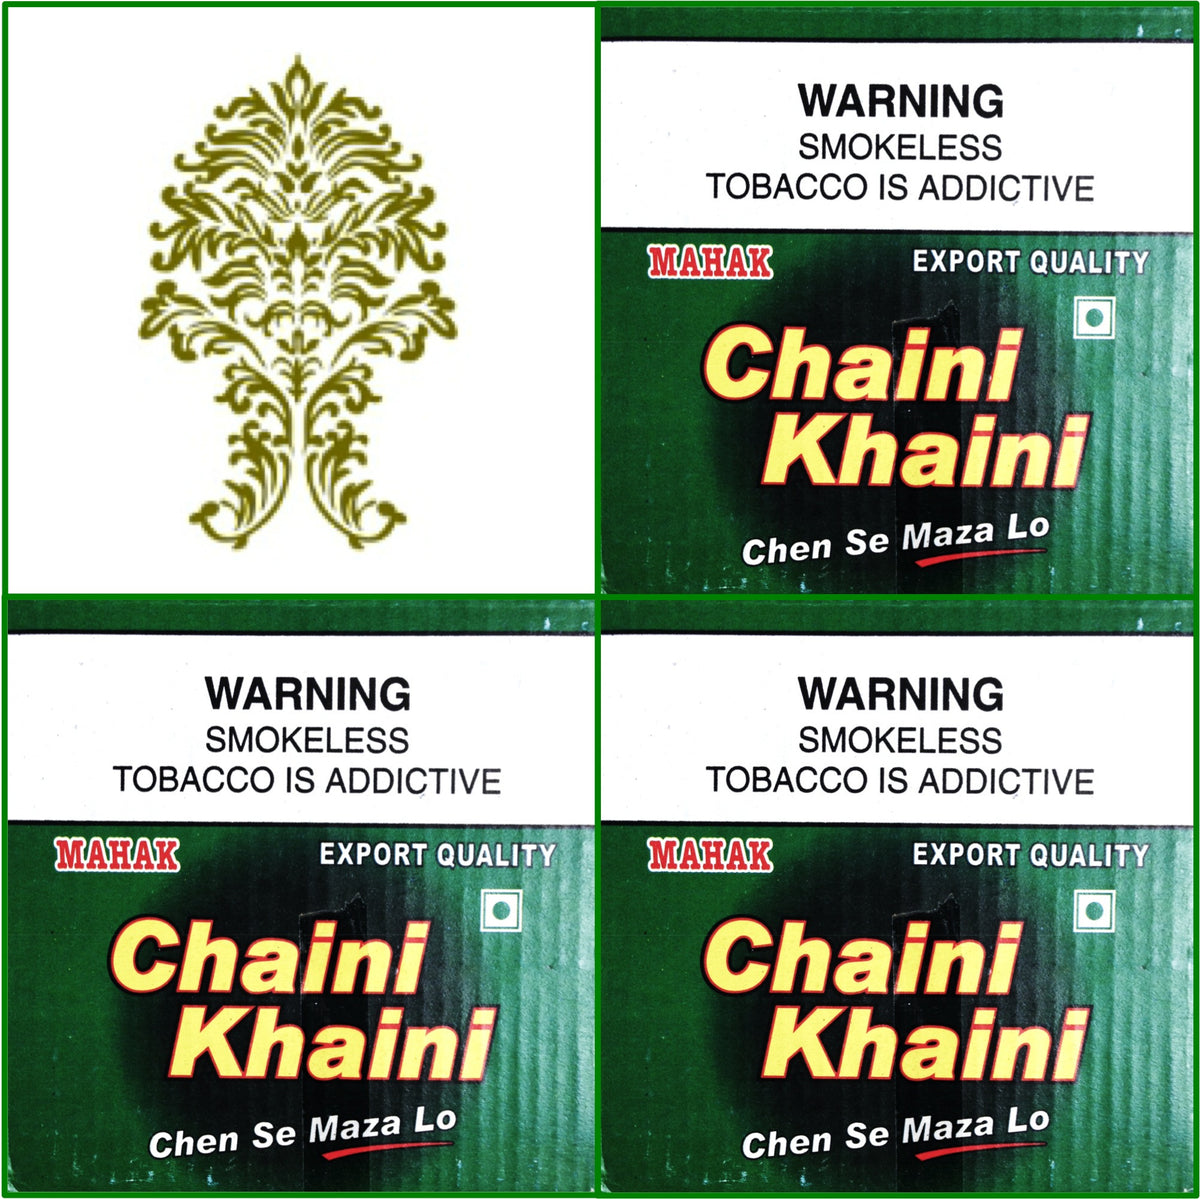 3 Boxes Chaini Khaini Best Indian Tobacco 20 x 4.5g Each October 2018